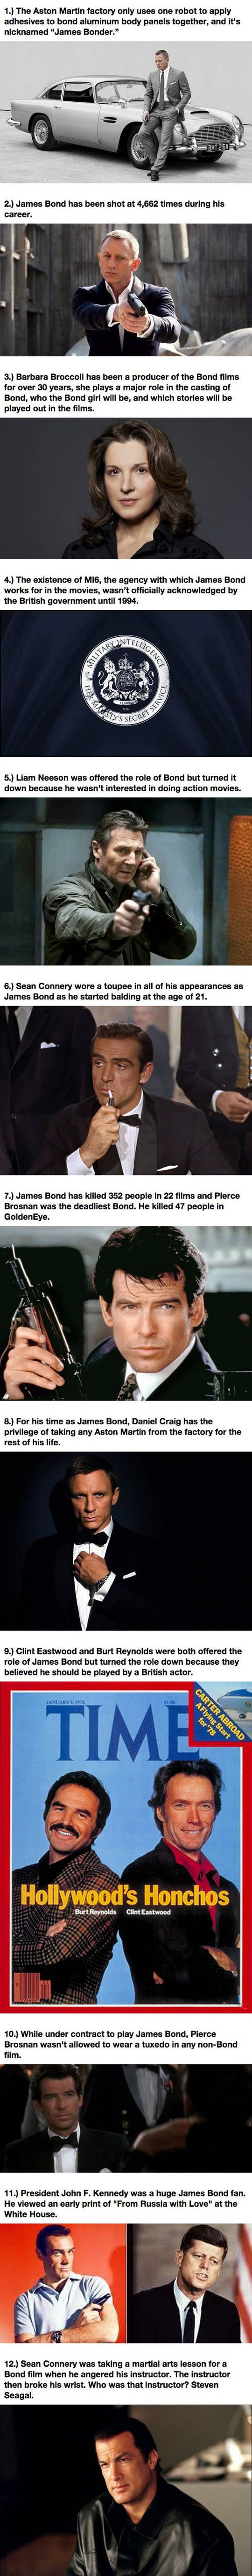 12 Things About The Famous James Bond Franchise